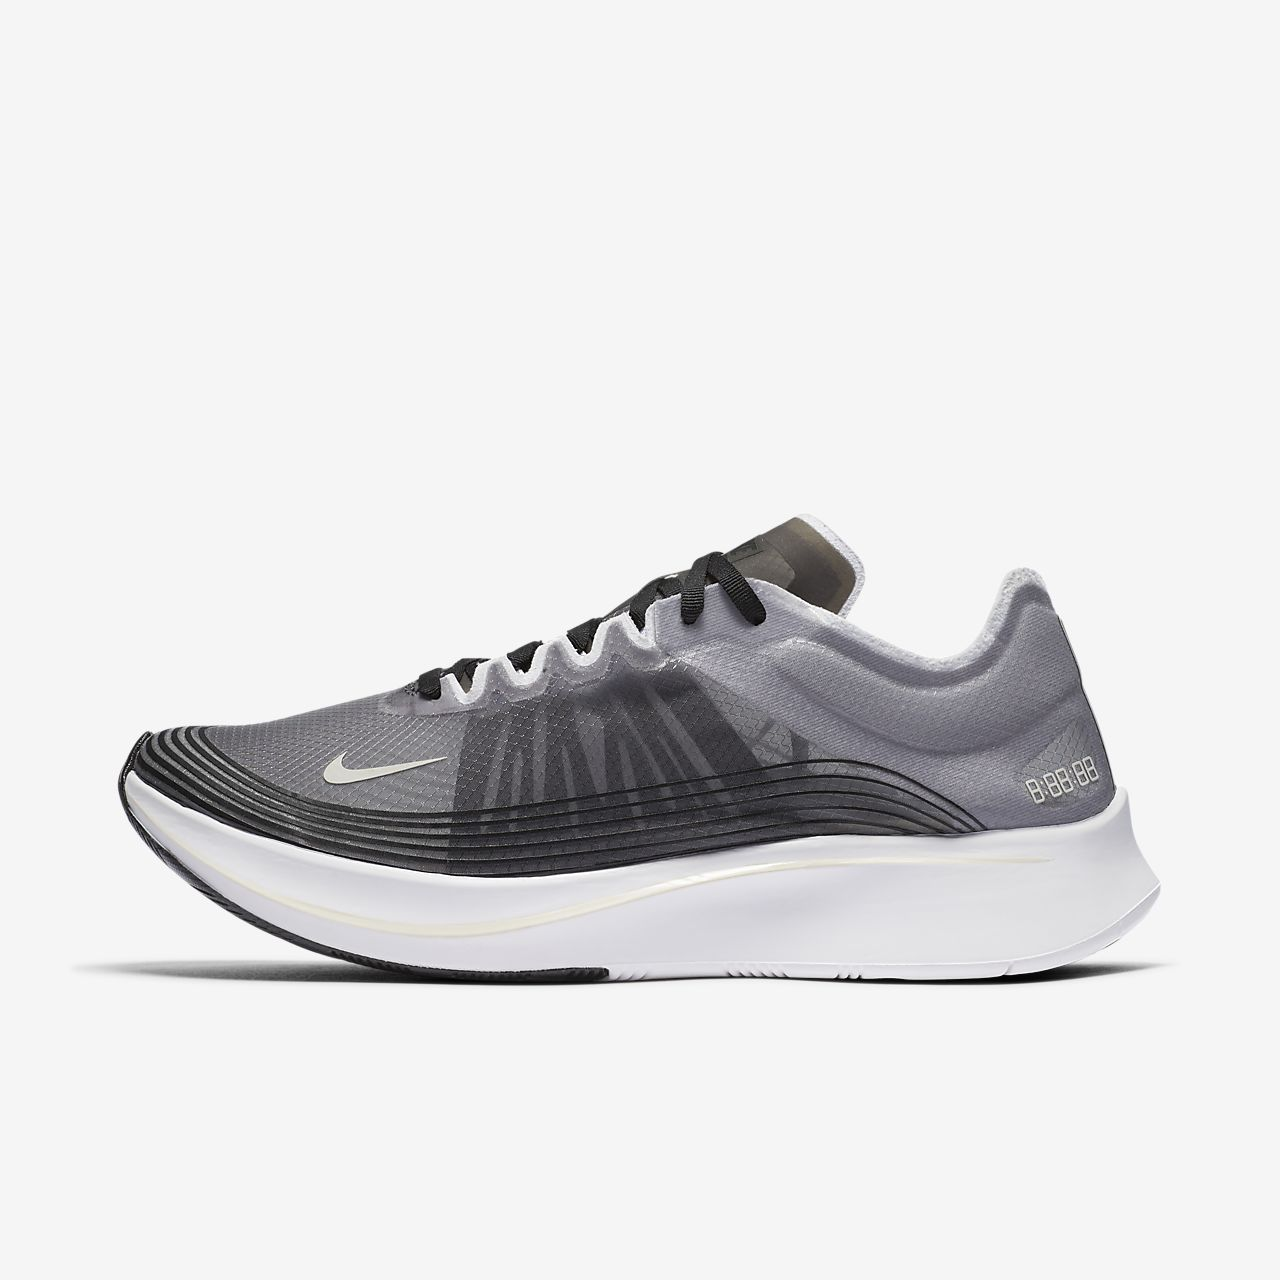 save off 309cd fe947 ... Buty do biegania Nike Zoom Fly SP